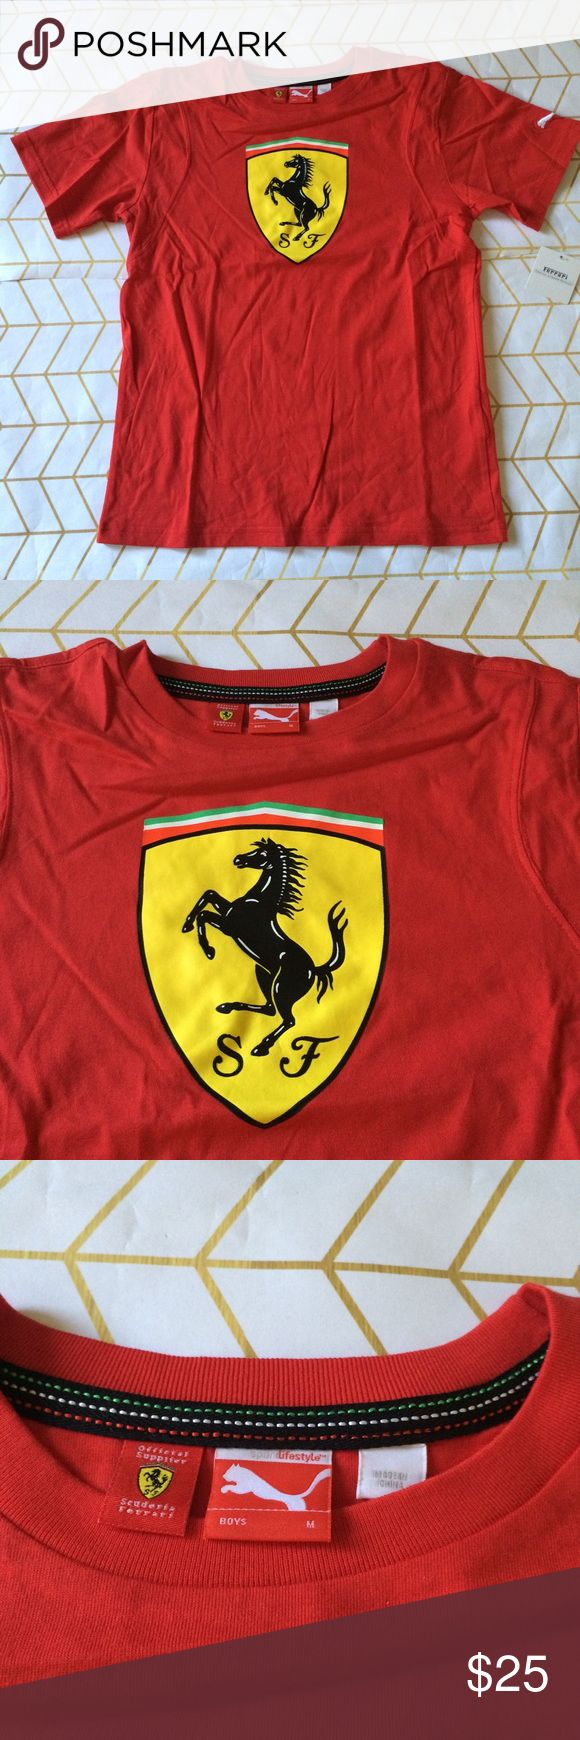 Sample Sale! Puma Ferrari Tee, M Ferrari and Puma Ferrari Designer Sample Sale! Please read: Tees are down to $25 (retail $45+), Polos/Sweatpants $35 (retail $70+), Jeans/Sweatshirts (retail $100+), and Jackets $65 (retail $150+), PLUS the 10% bundle discount! These items are heavily discounted by 60-85%, list/bundle prices are FIRM!  {These items are direct from the manufacturer and will have sample tags or no tag. They may have their size/brand printed on tag + not garment. Please check…